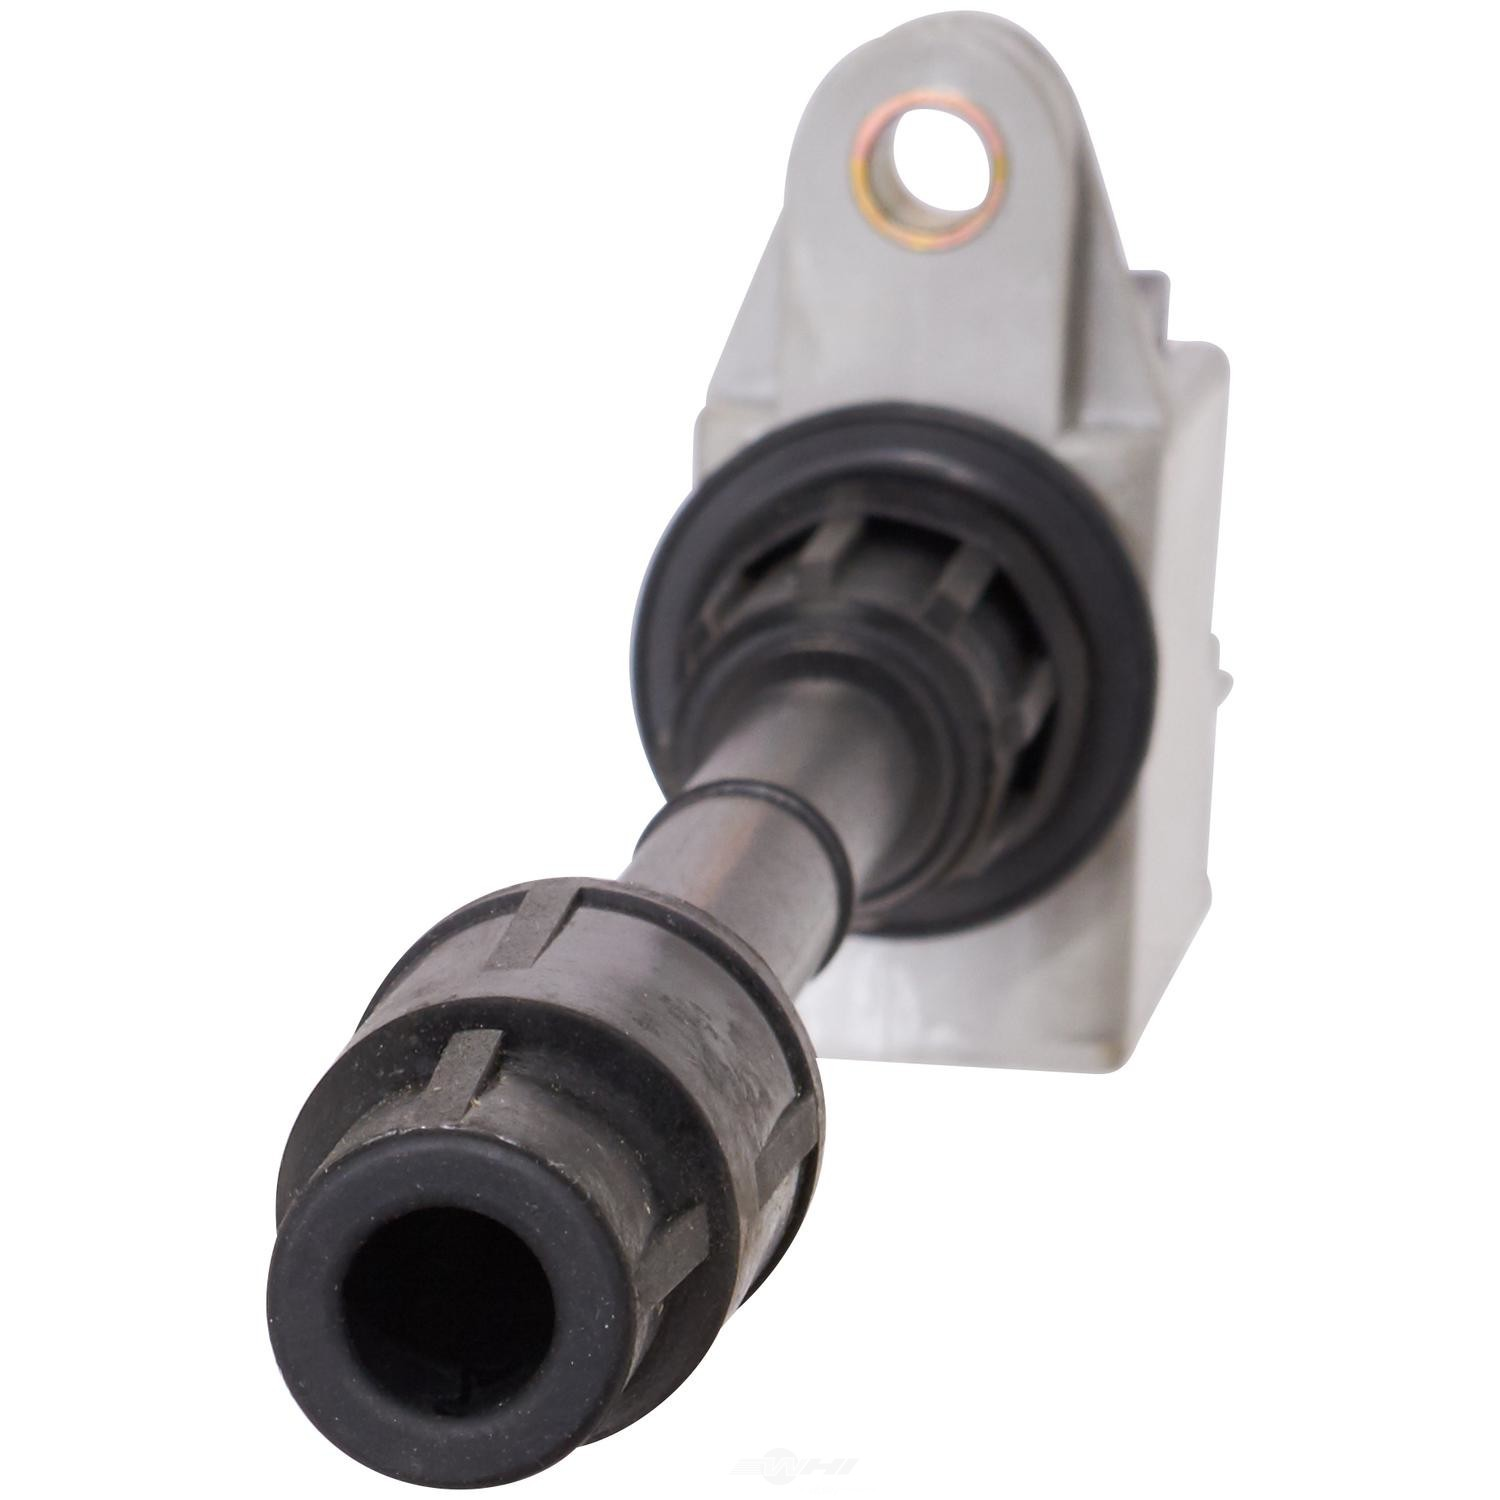 SPECTRA PREMIUM IND, INC. - Ignition Coil - SPC C-606